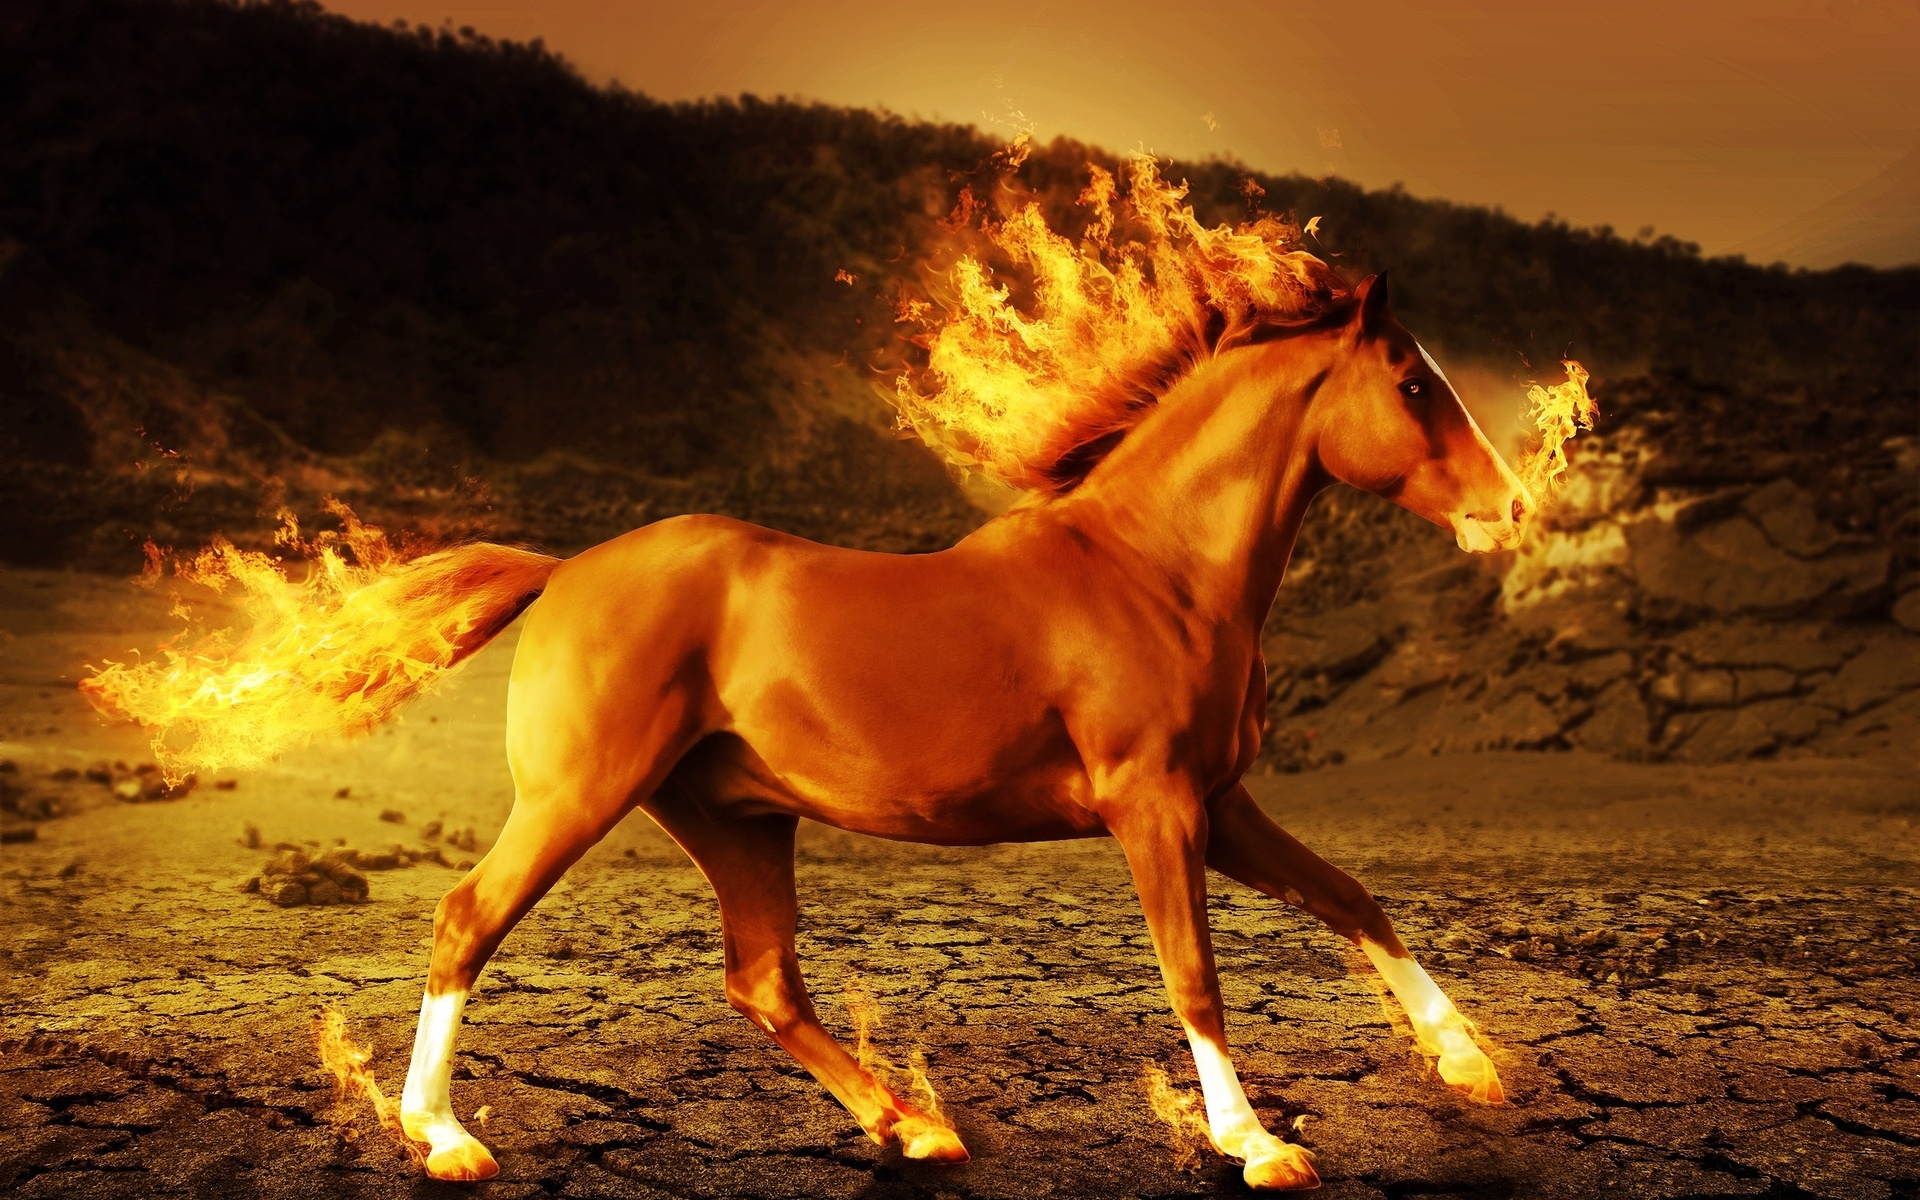 Horse Fire Wallpaper Running Horse On Fire 126954 Hd Wallpaper Backgrounds Download